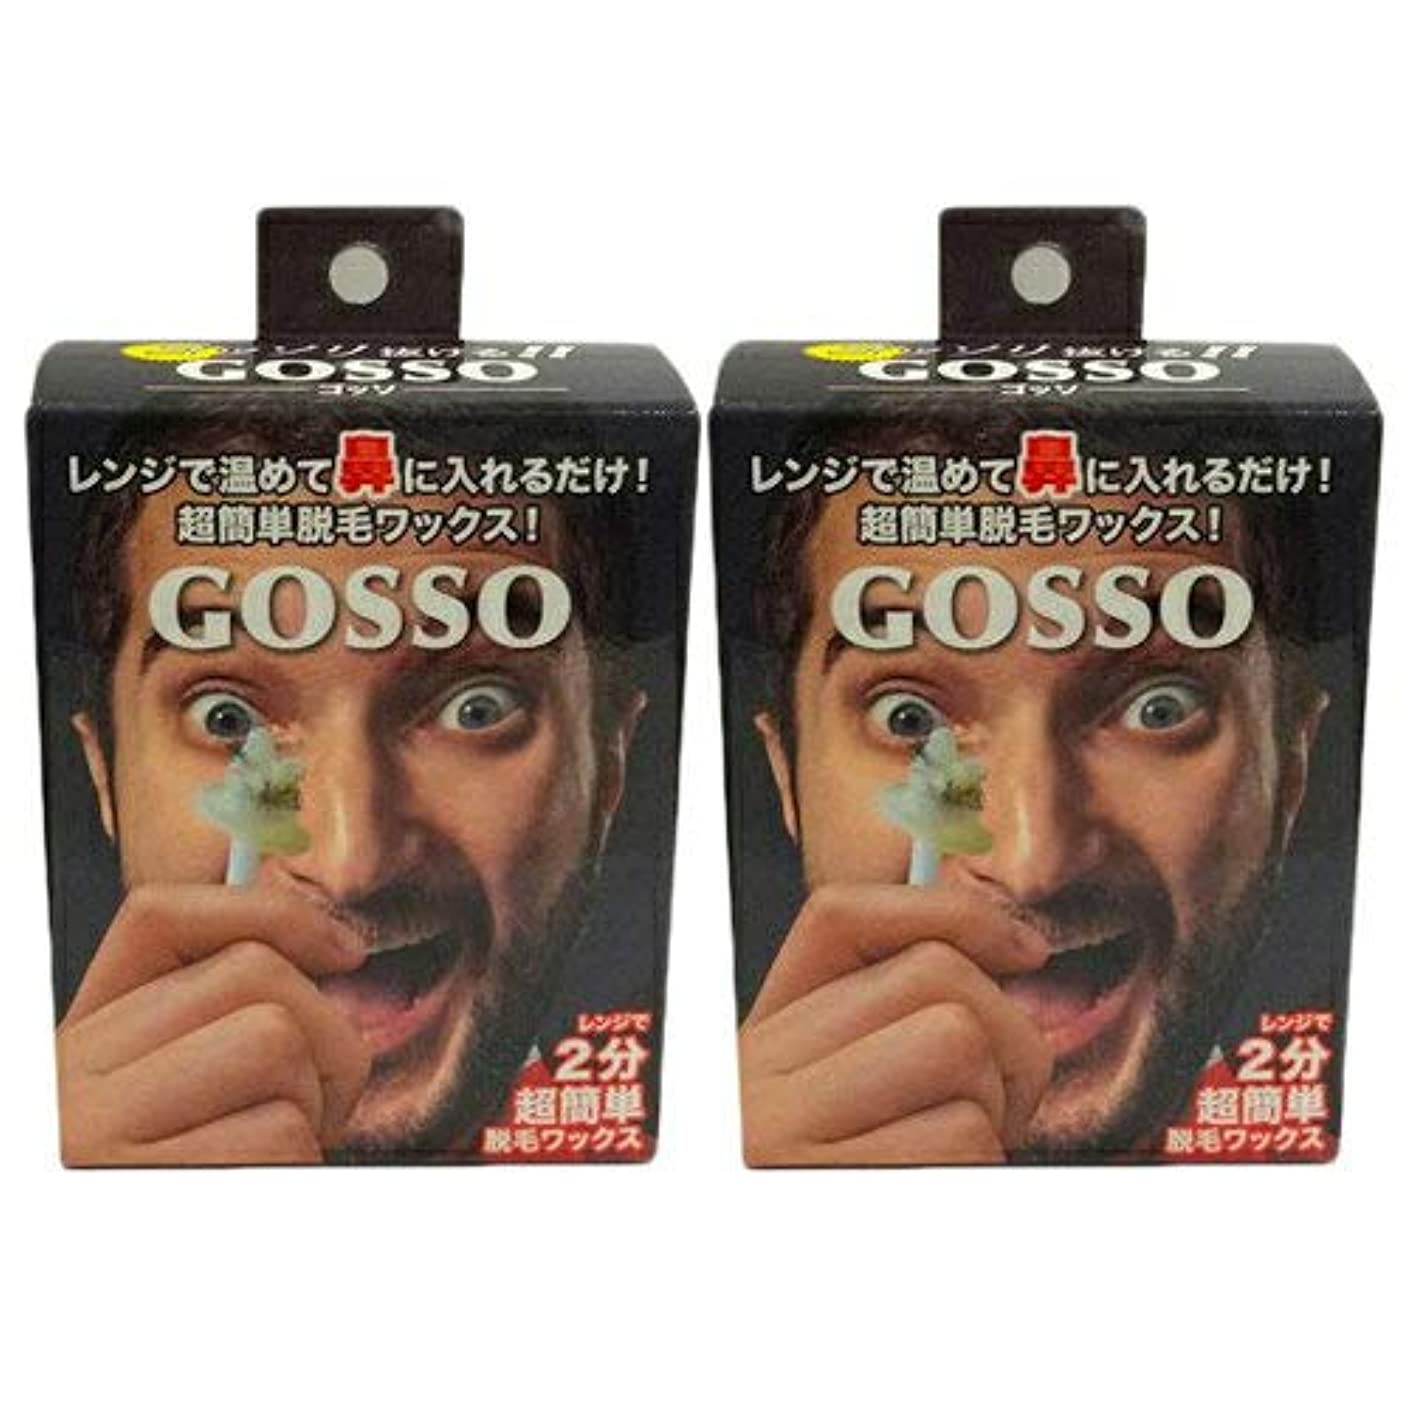 GOSSO  2箱セット